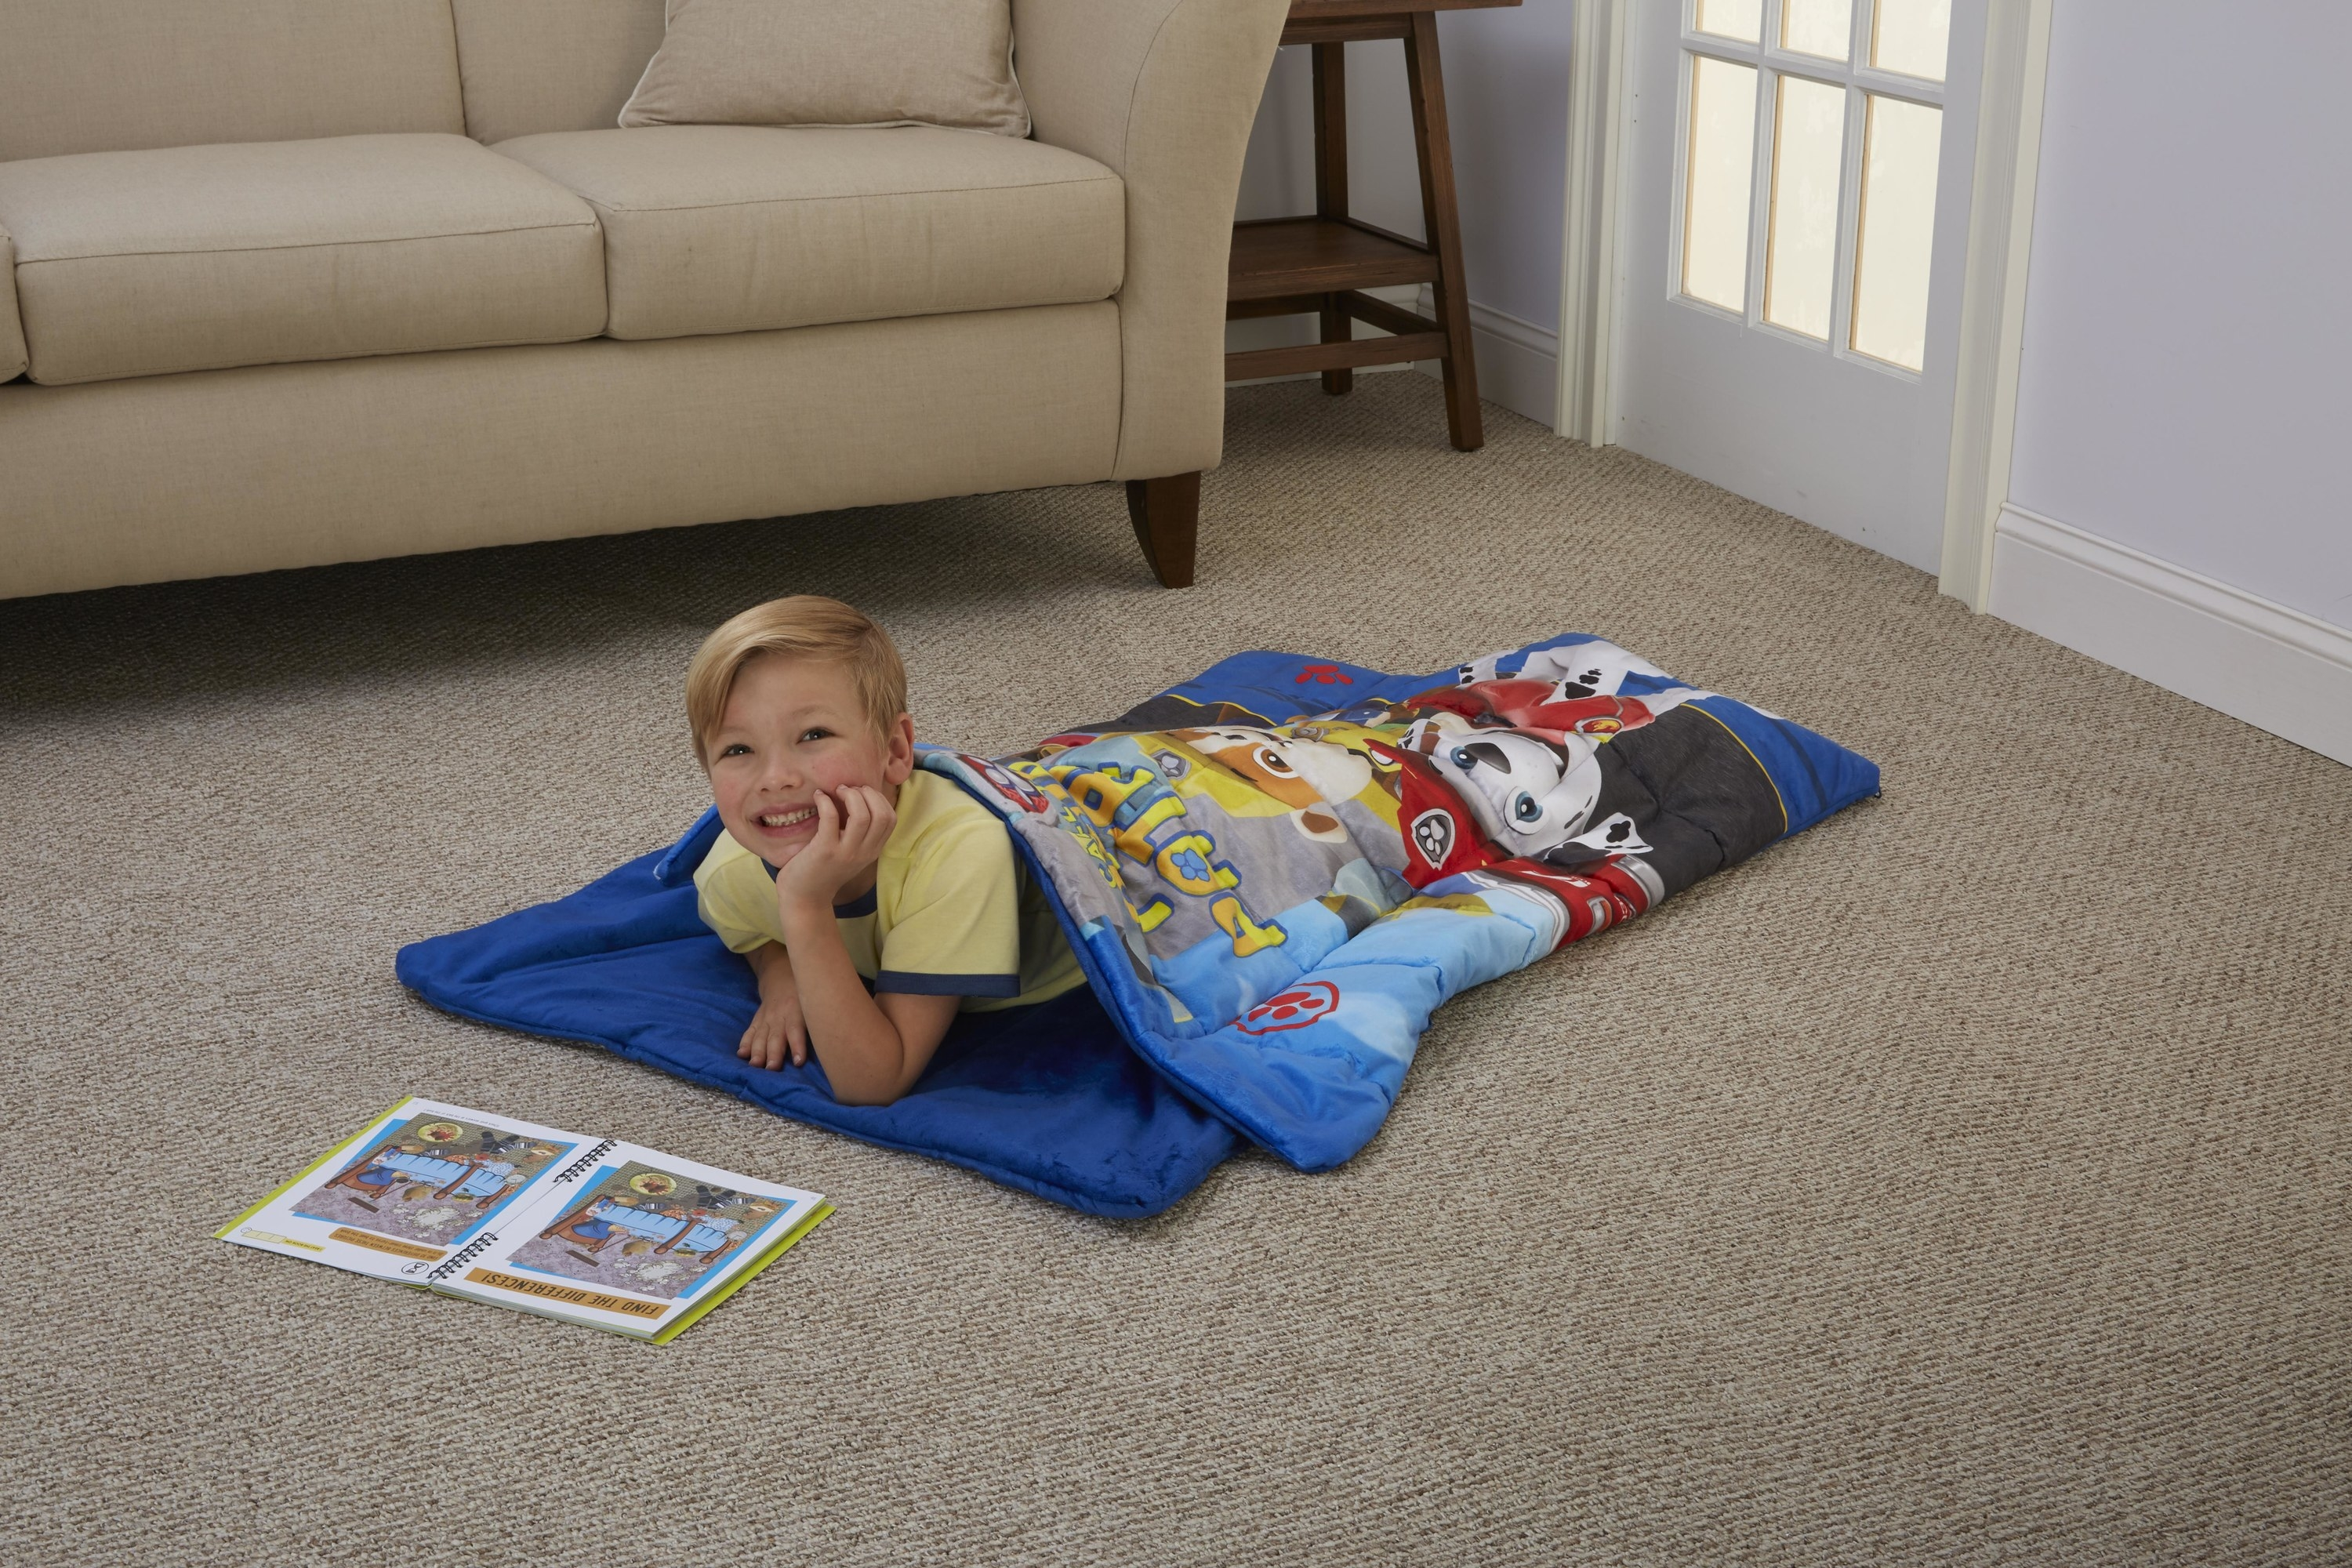 A child model laying on the floor in the sleeping bag